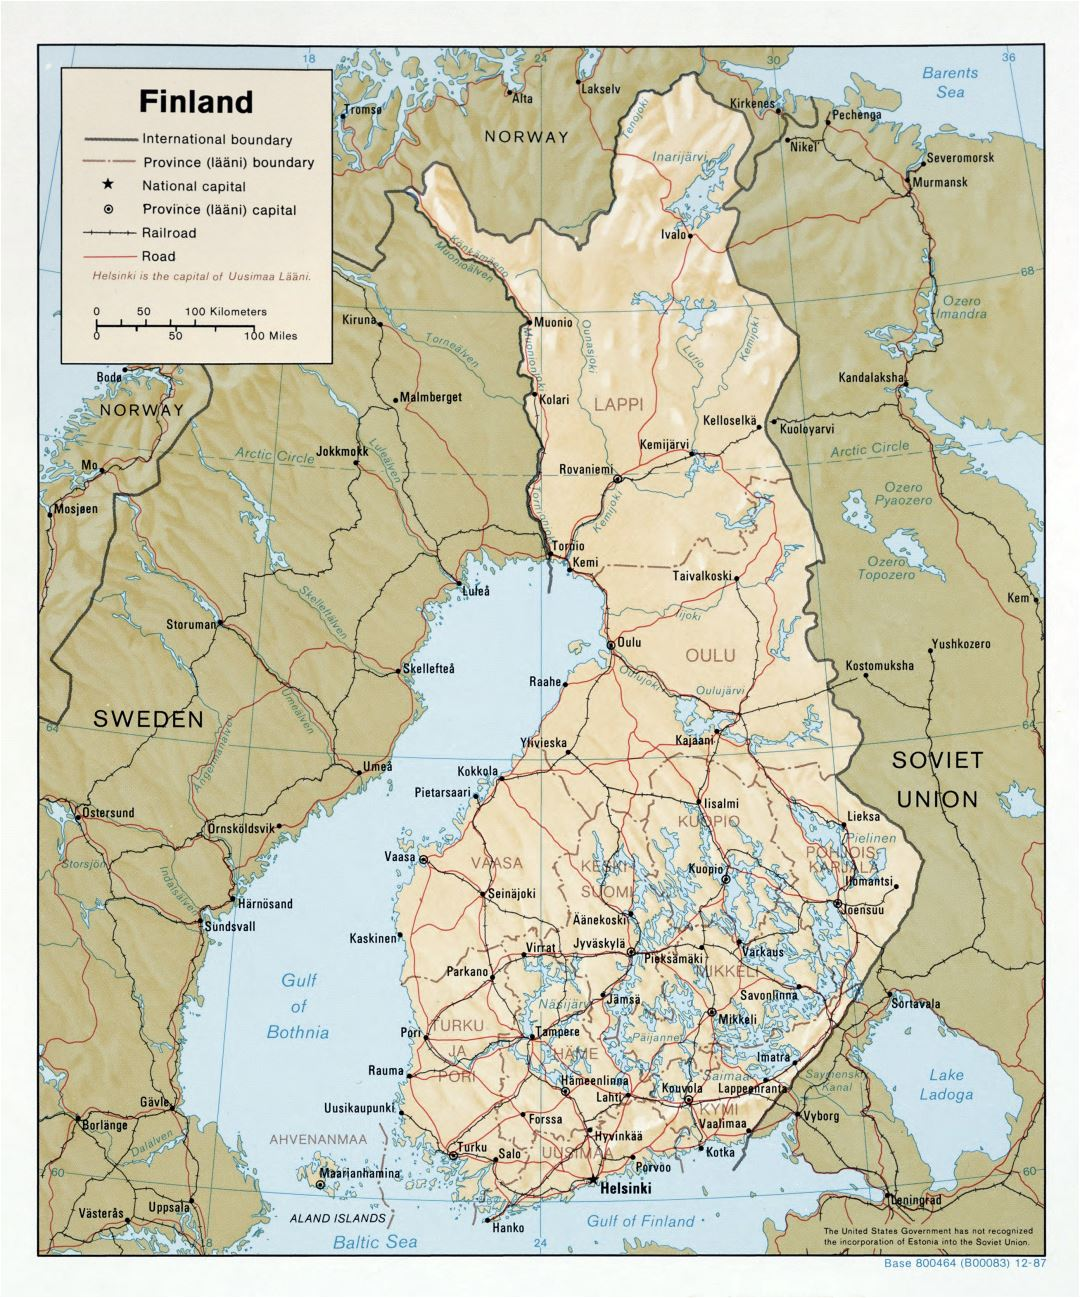 Large scale political and administrative map of Finland with relief, roads and major cities - 1987